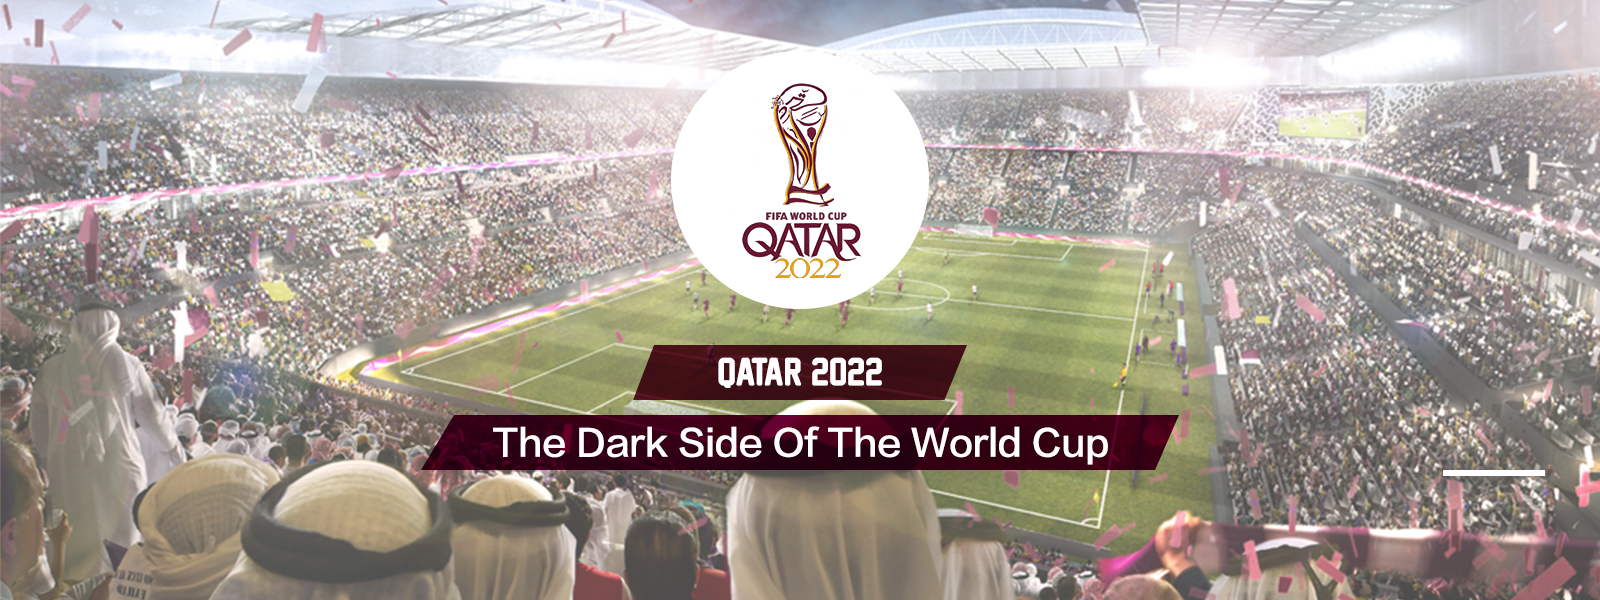 The Dark Side Of The Qatar 2022 World Cup